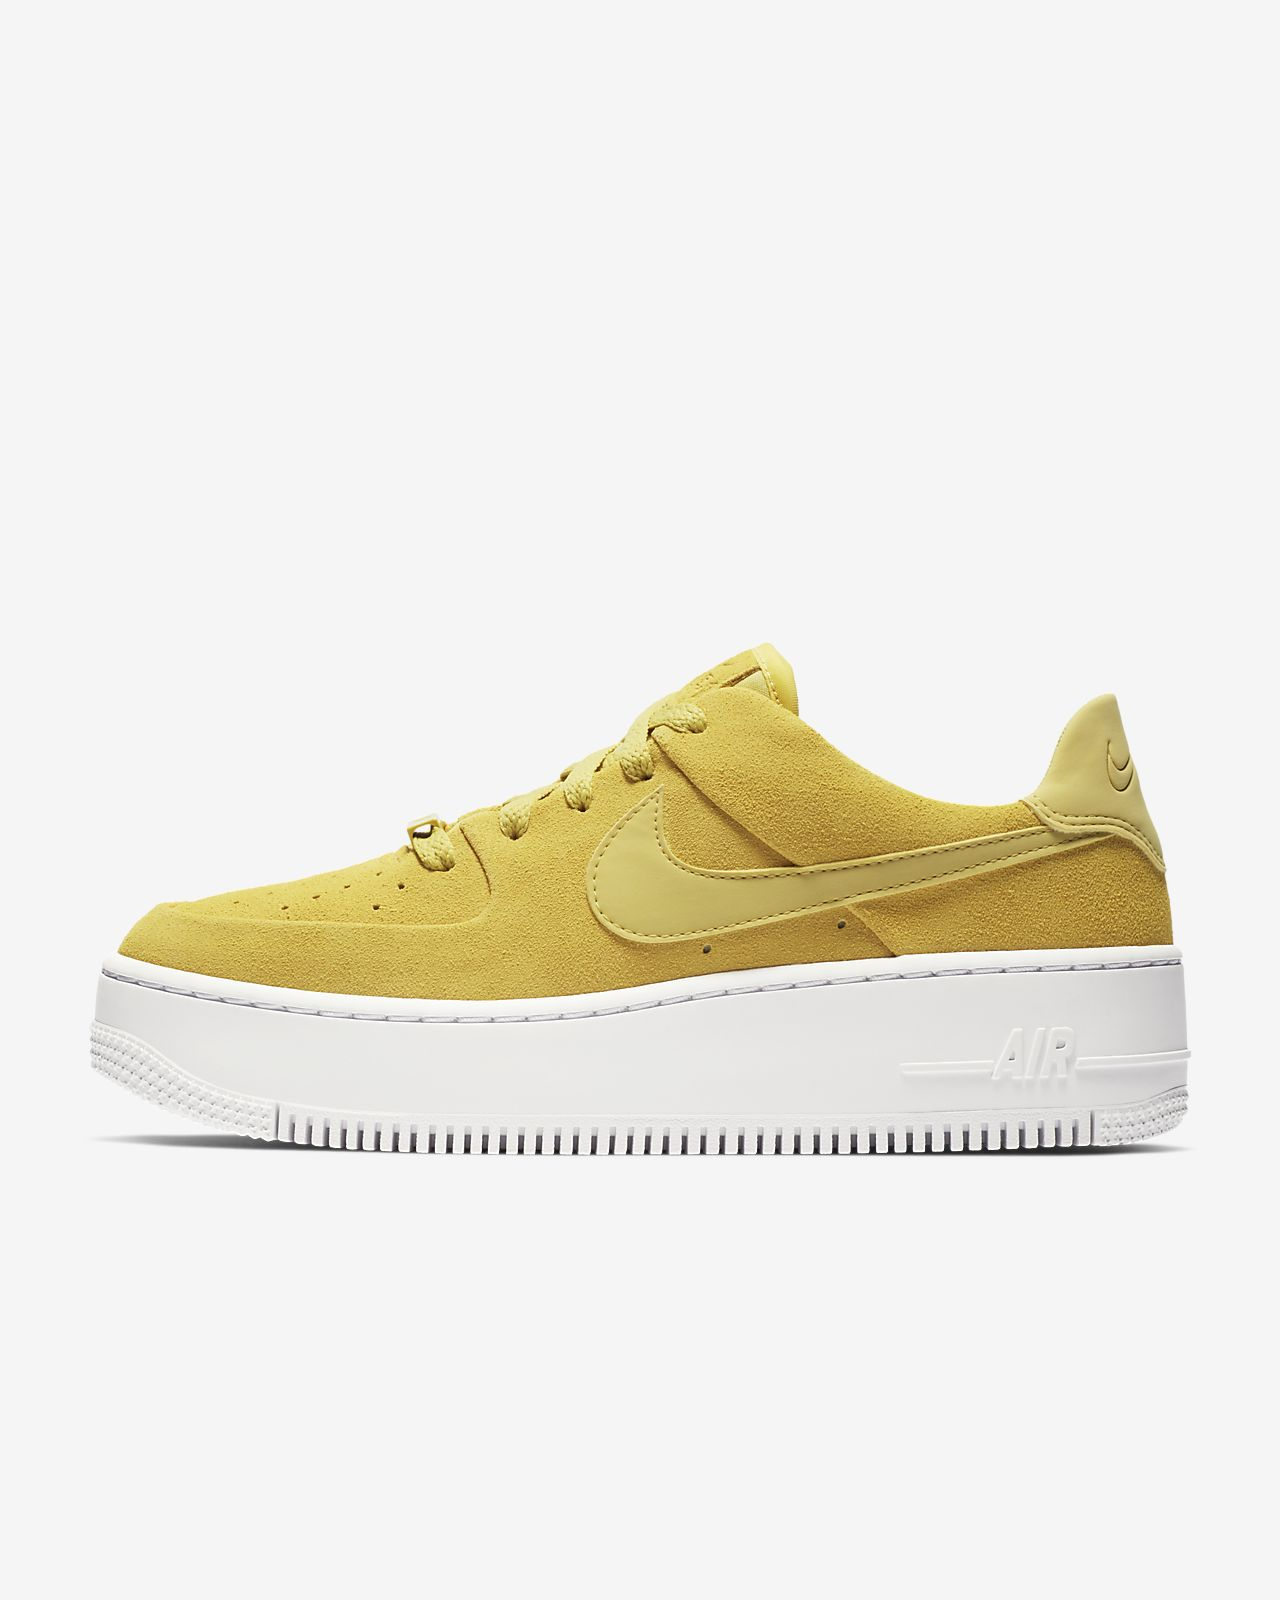 promo code a894c ee699 Women s Shoe. Nike Air Force 1 Sage Low